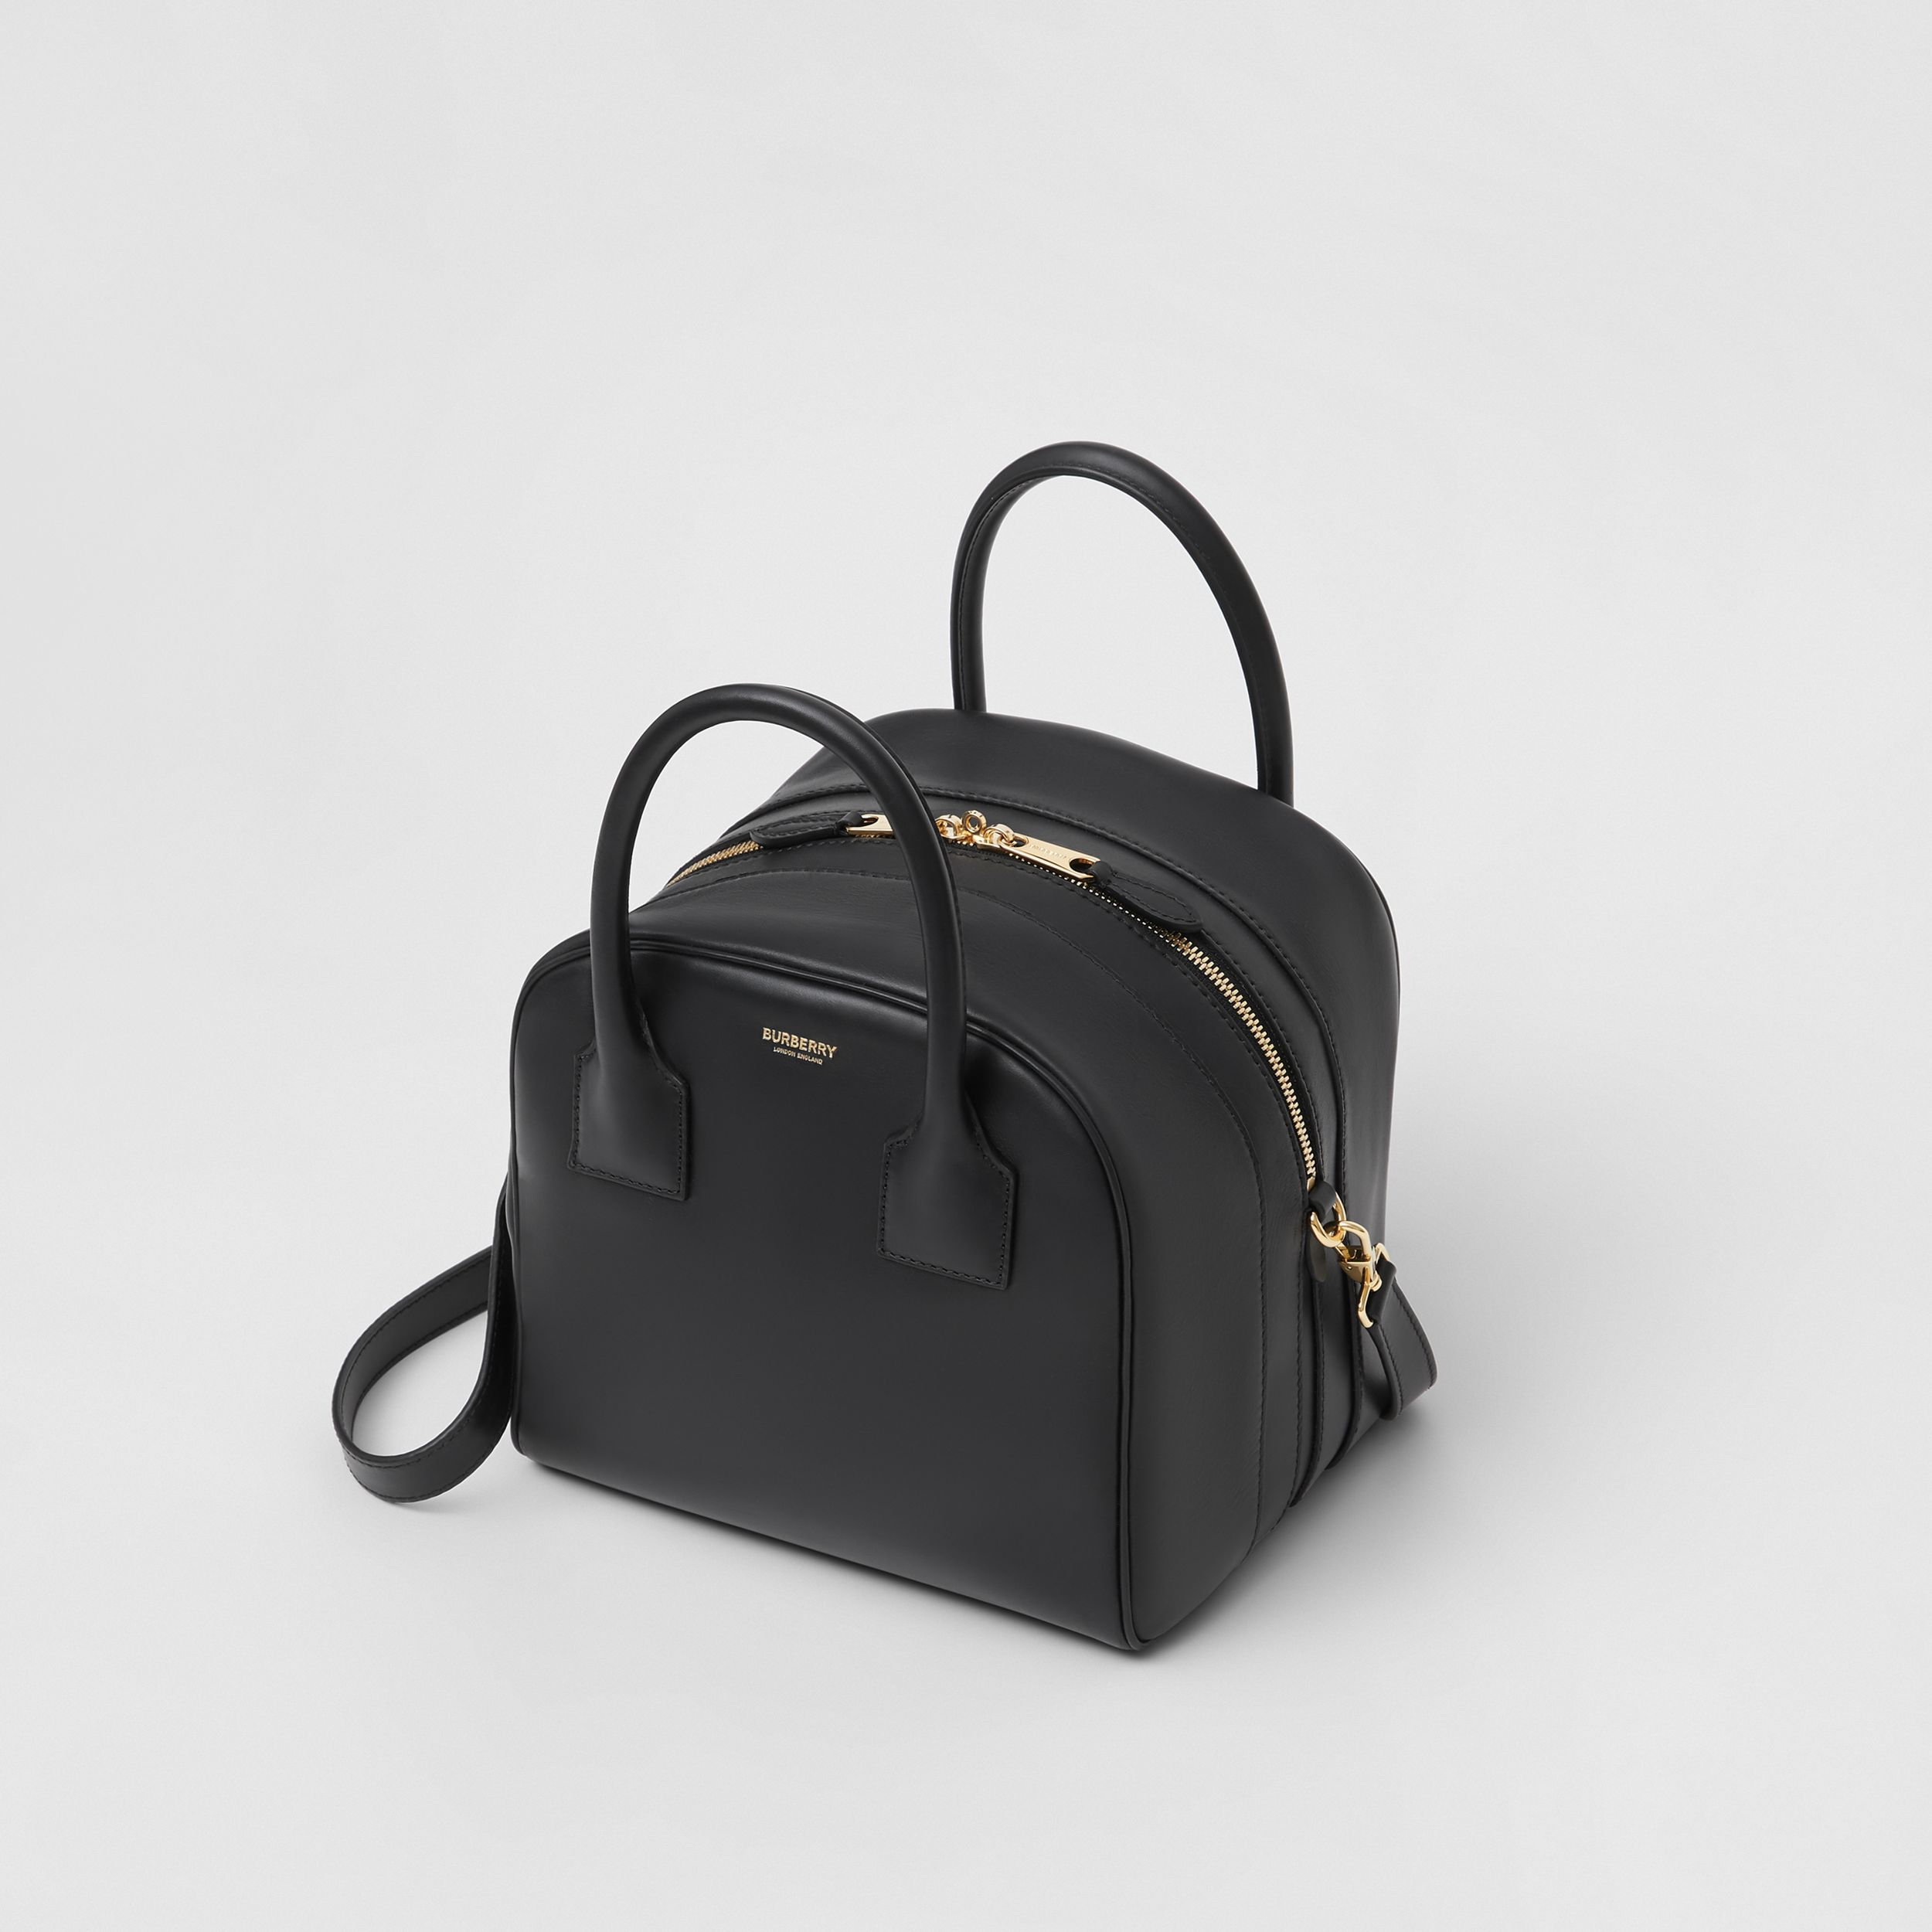 Small Leather Cube Bag in Black - Women | Burberry - 4